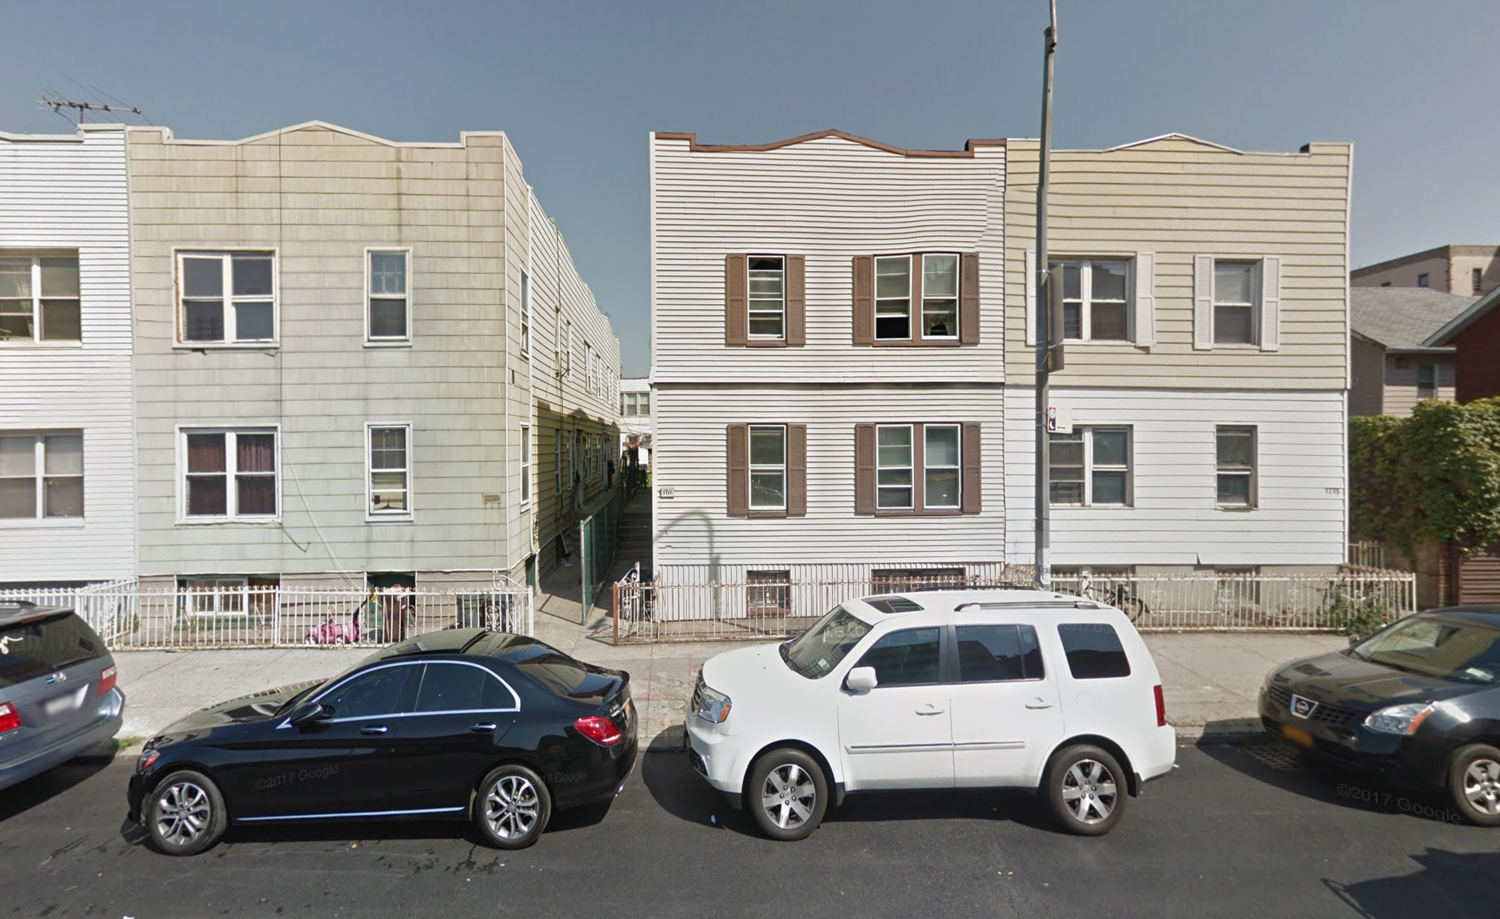 1711 Coney Island Avenue, via Google Maps